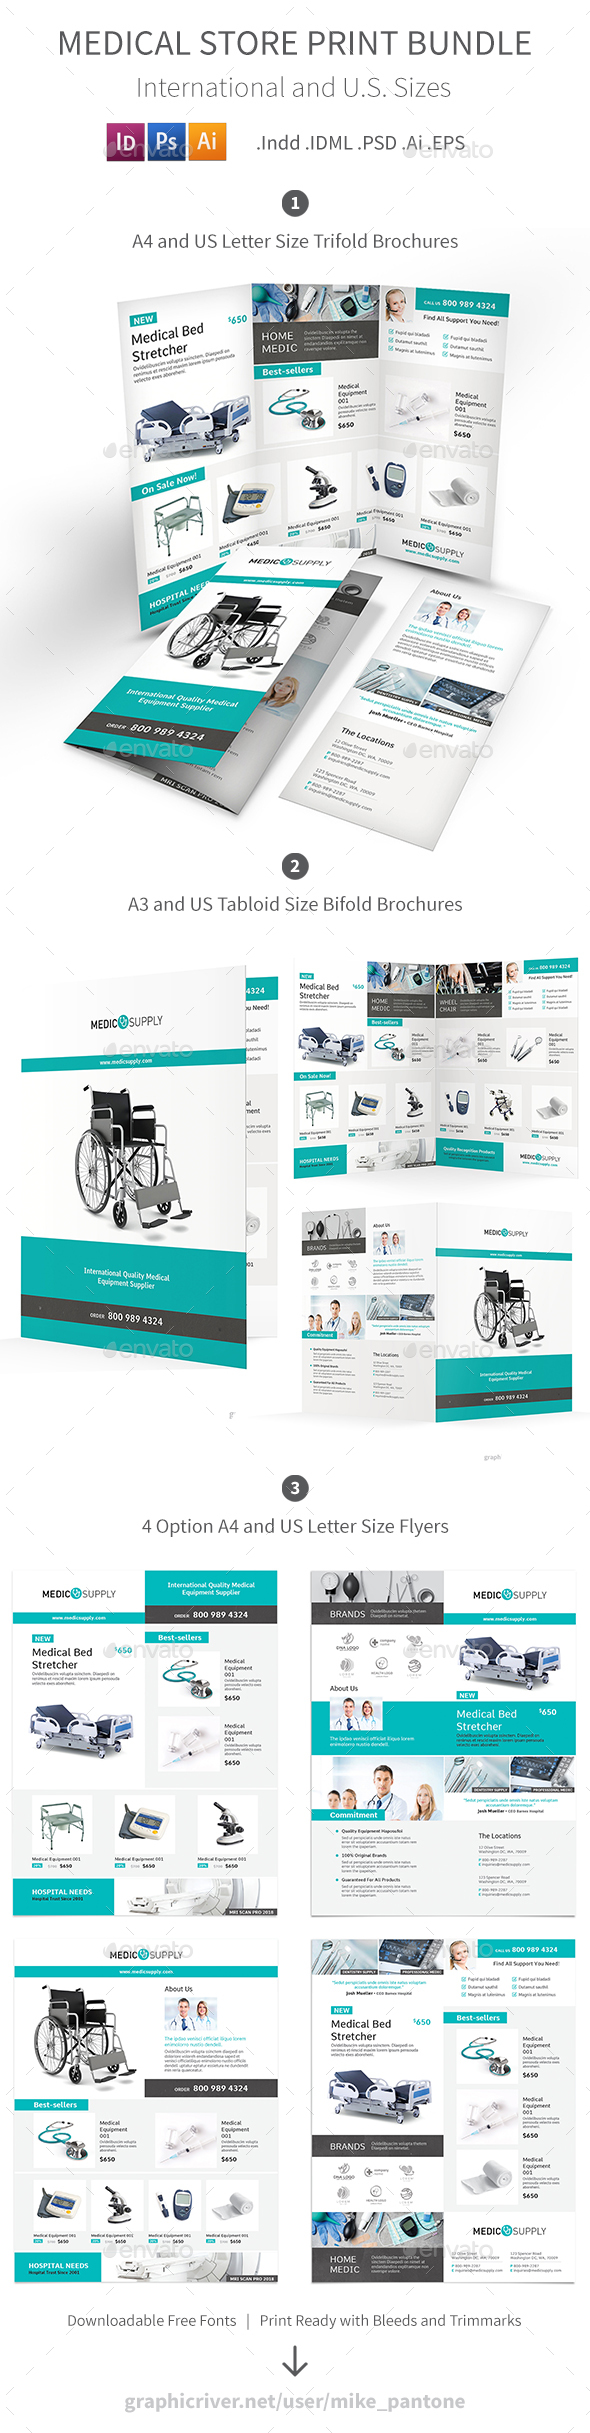 Medical Store Print Bundle - Informational Brochures